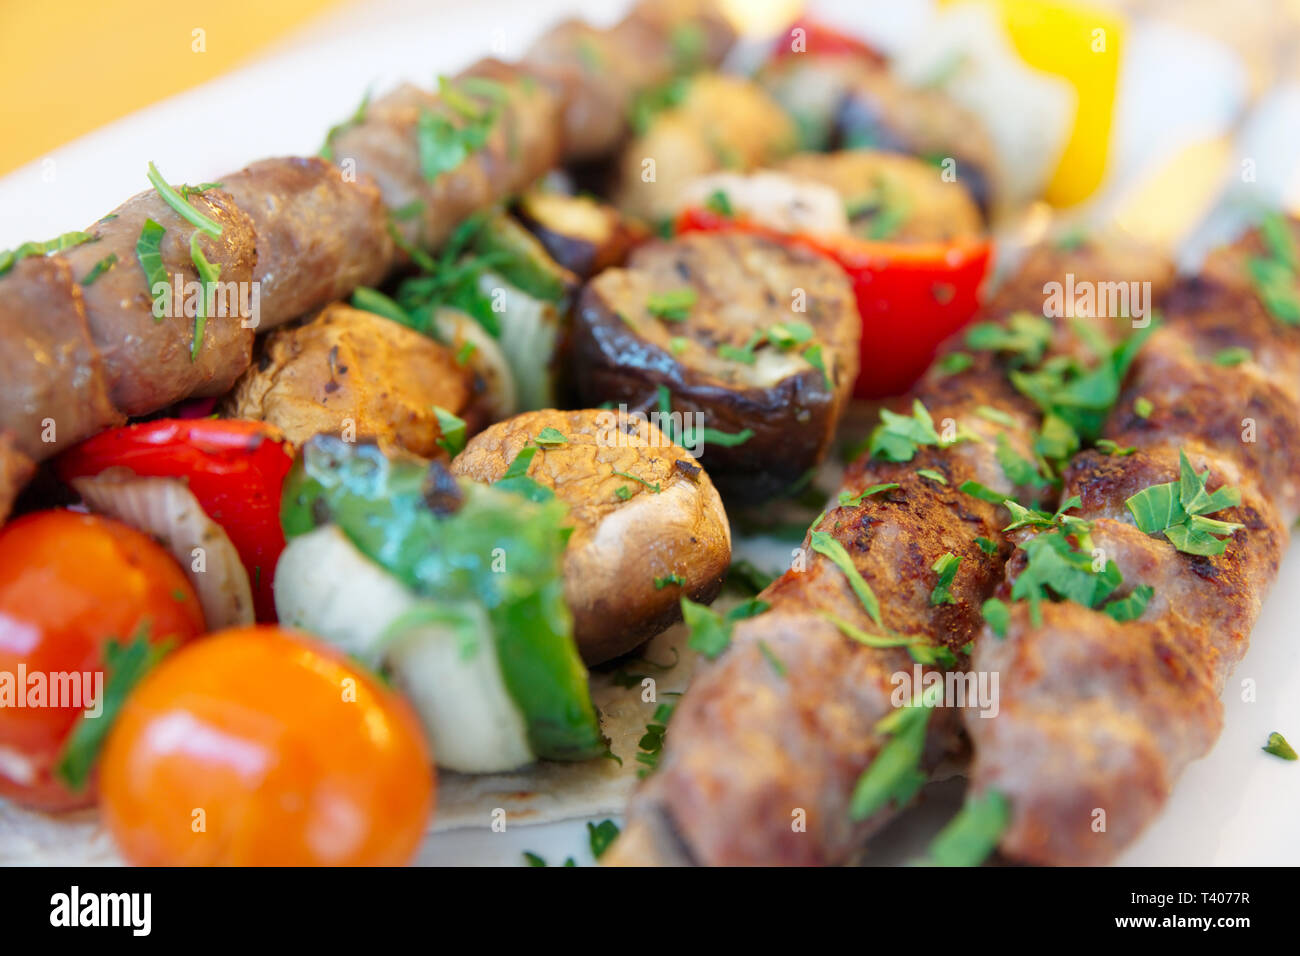 Grilled chicken hearts and vegetables on the metal skewers - Stock Image